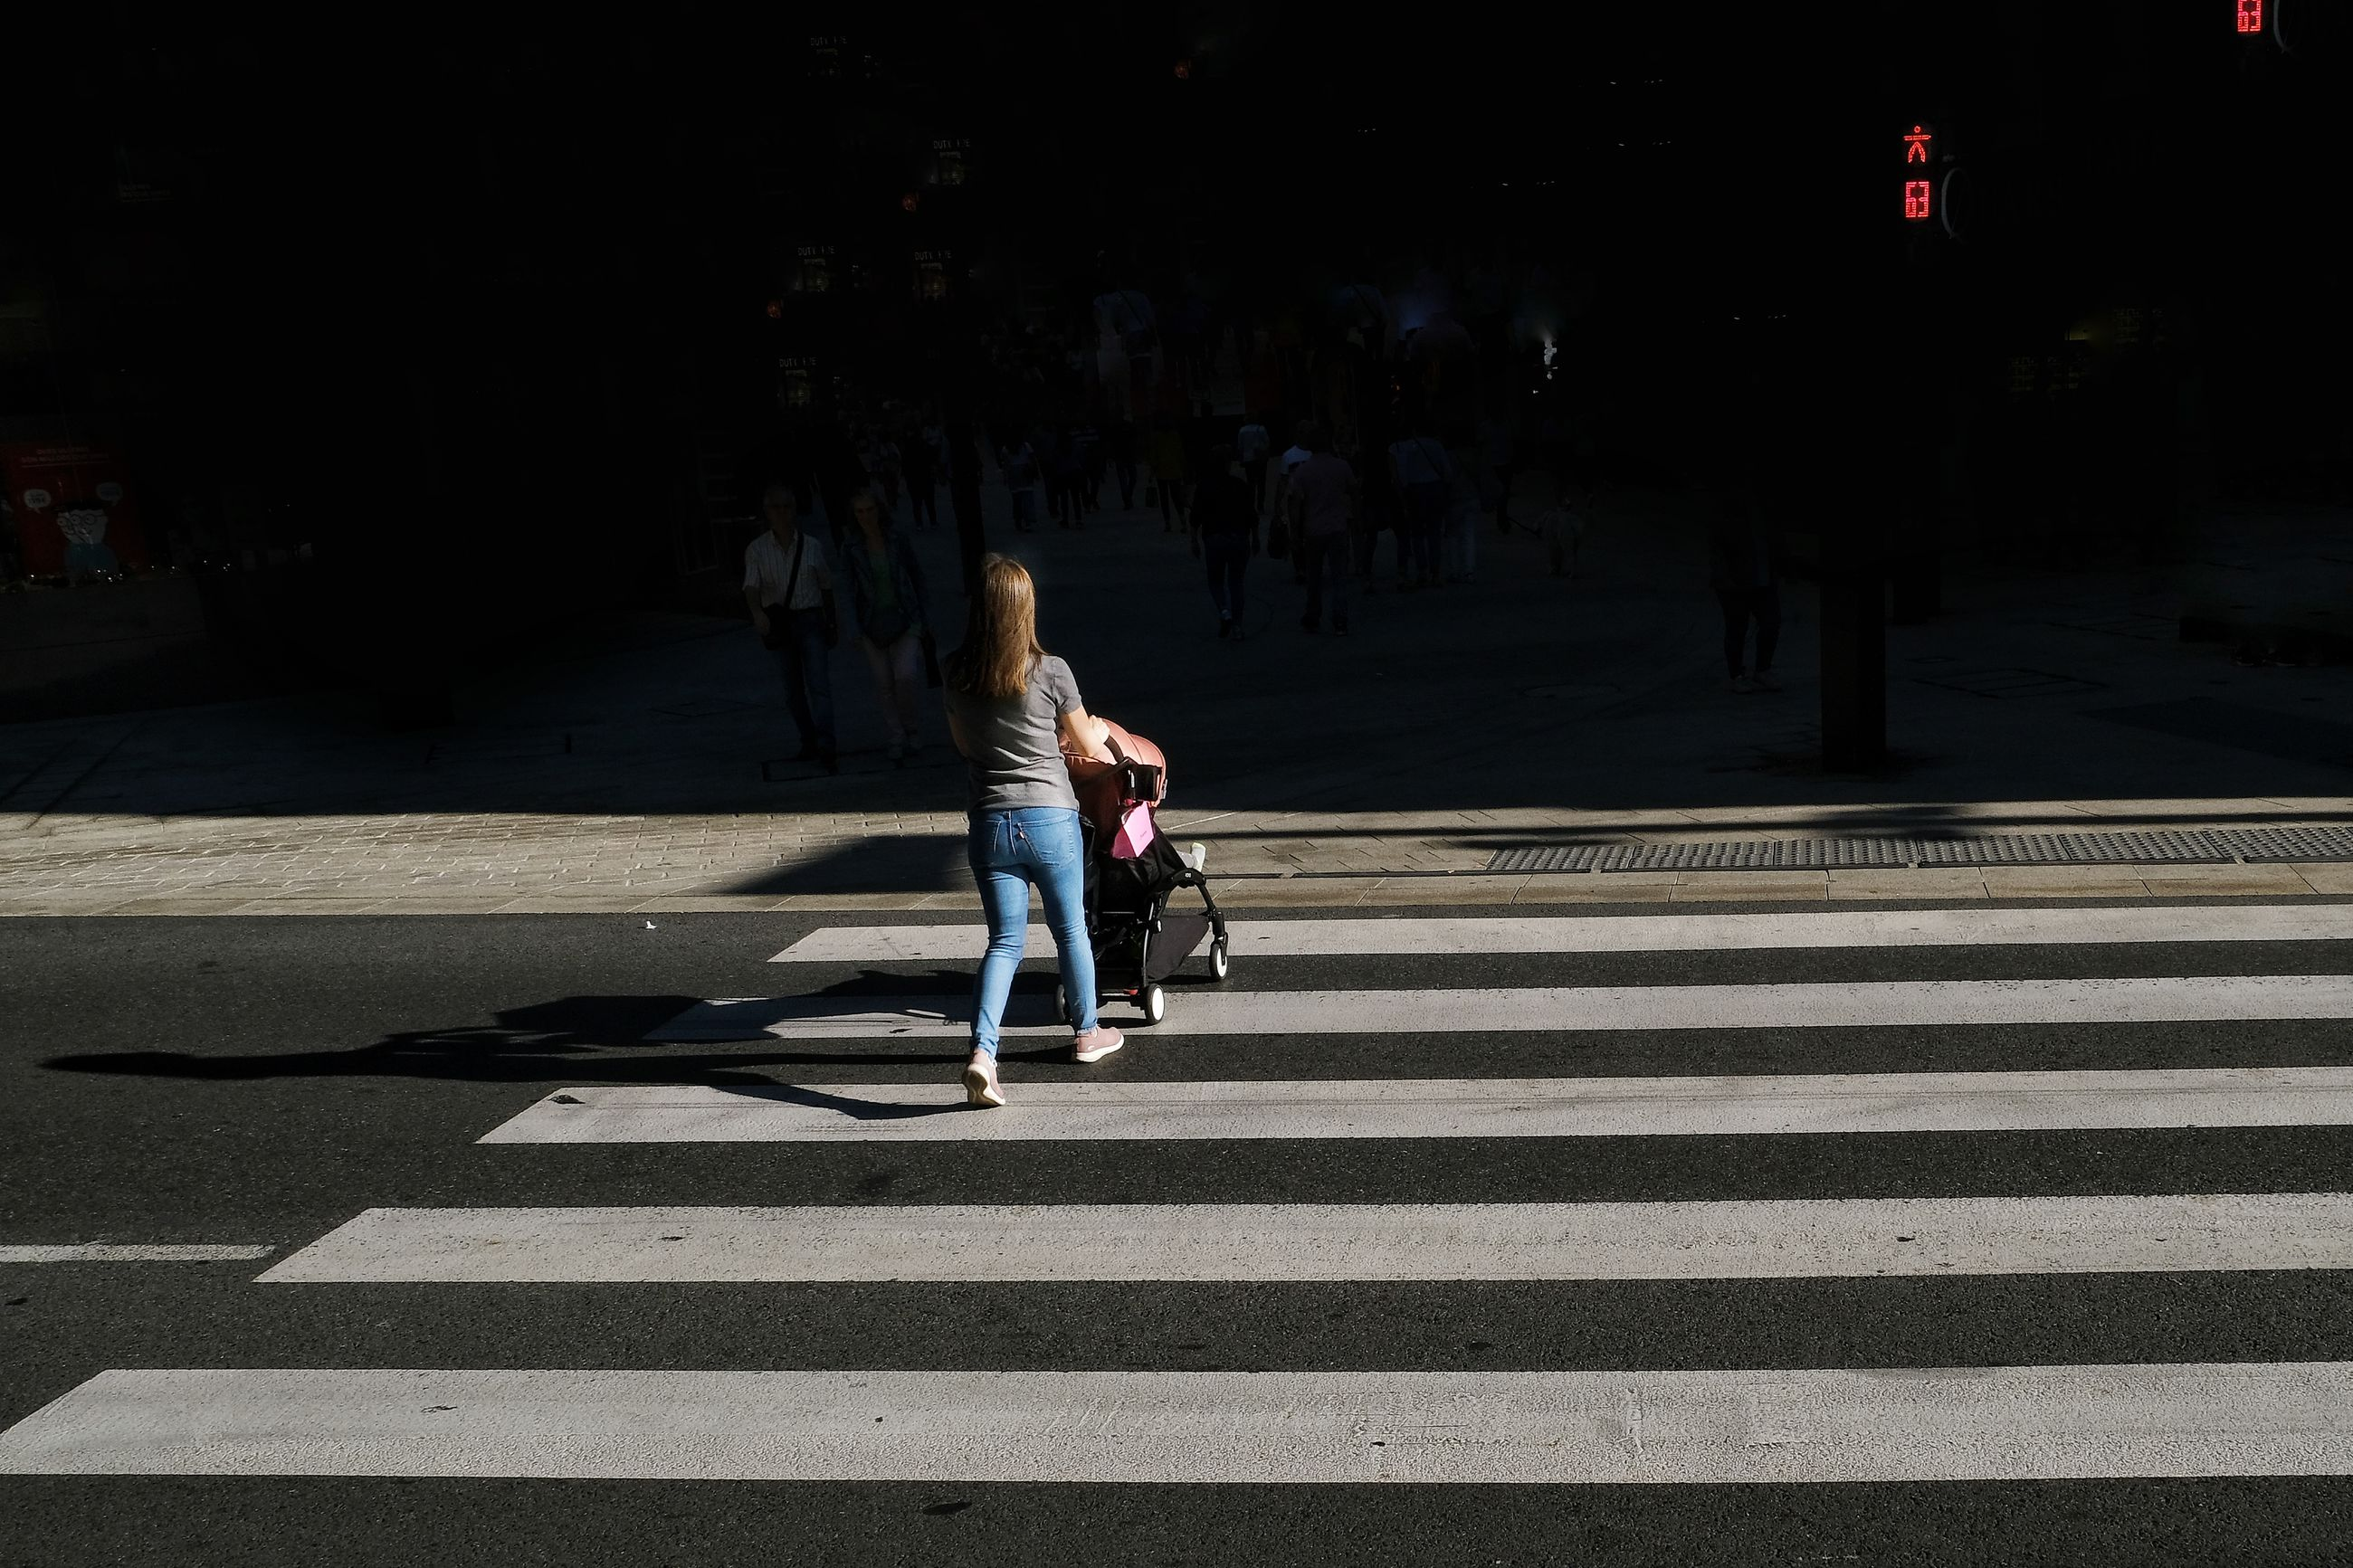 crosswalk, road marking, city, road, zebra crossing, crossing, symbol, street, sign, marking, real people, transportation, full length, women, lifestyles, people, city life, walking, casual clothing, architecture, outdoors